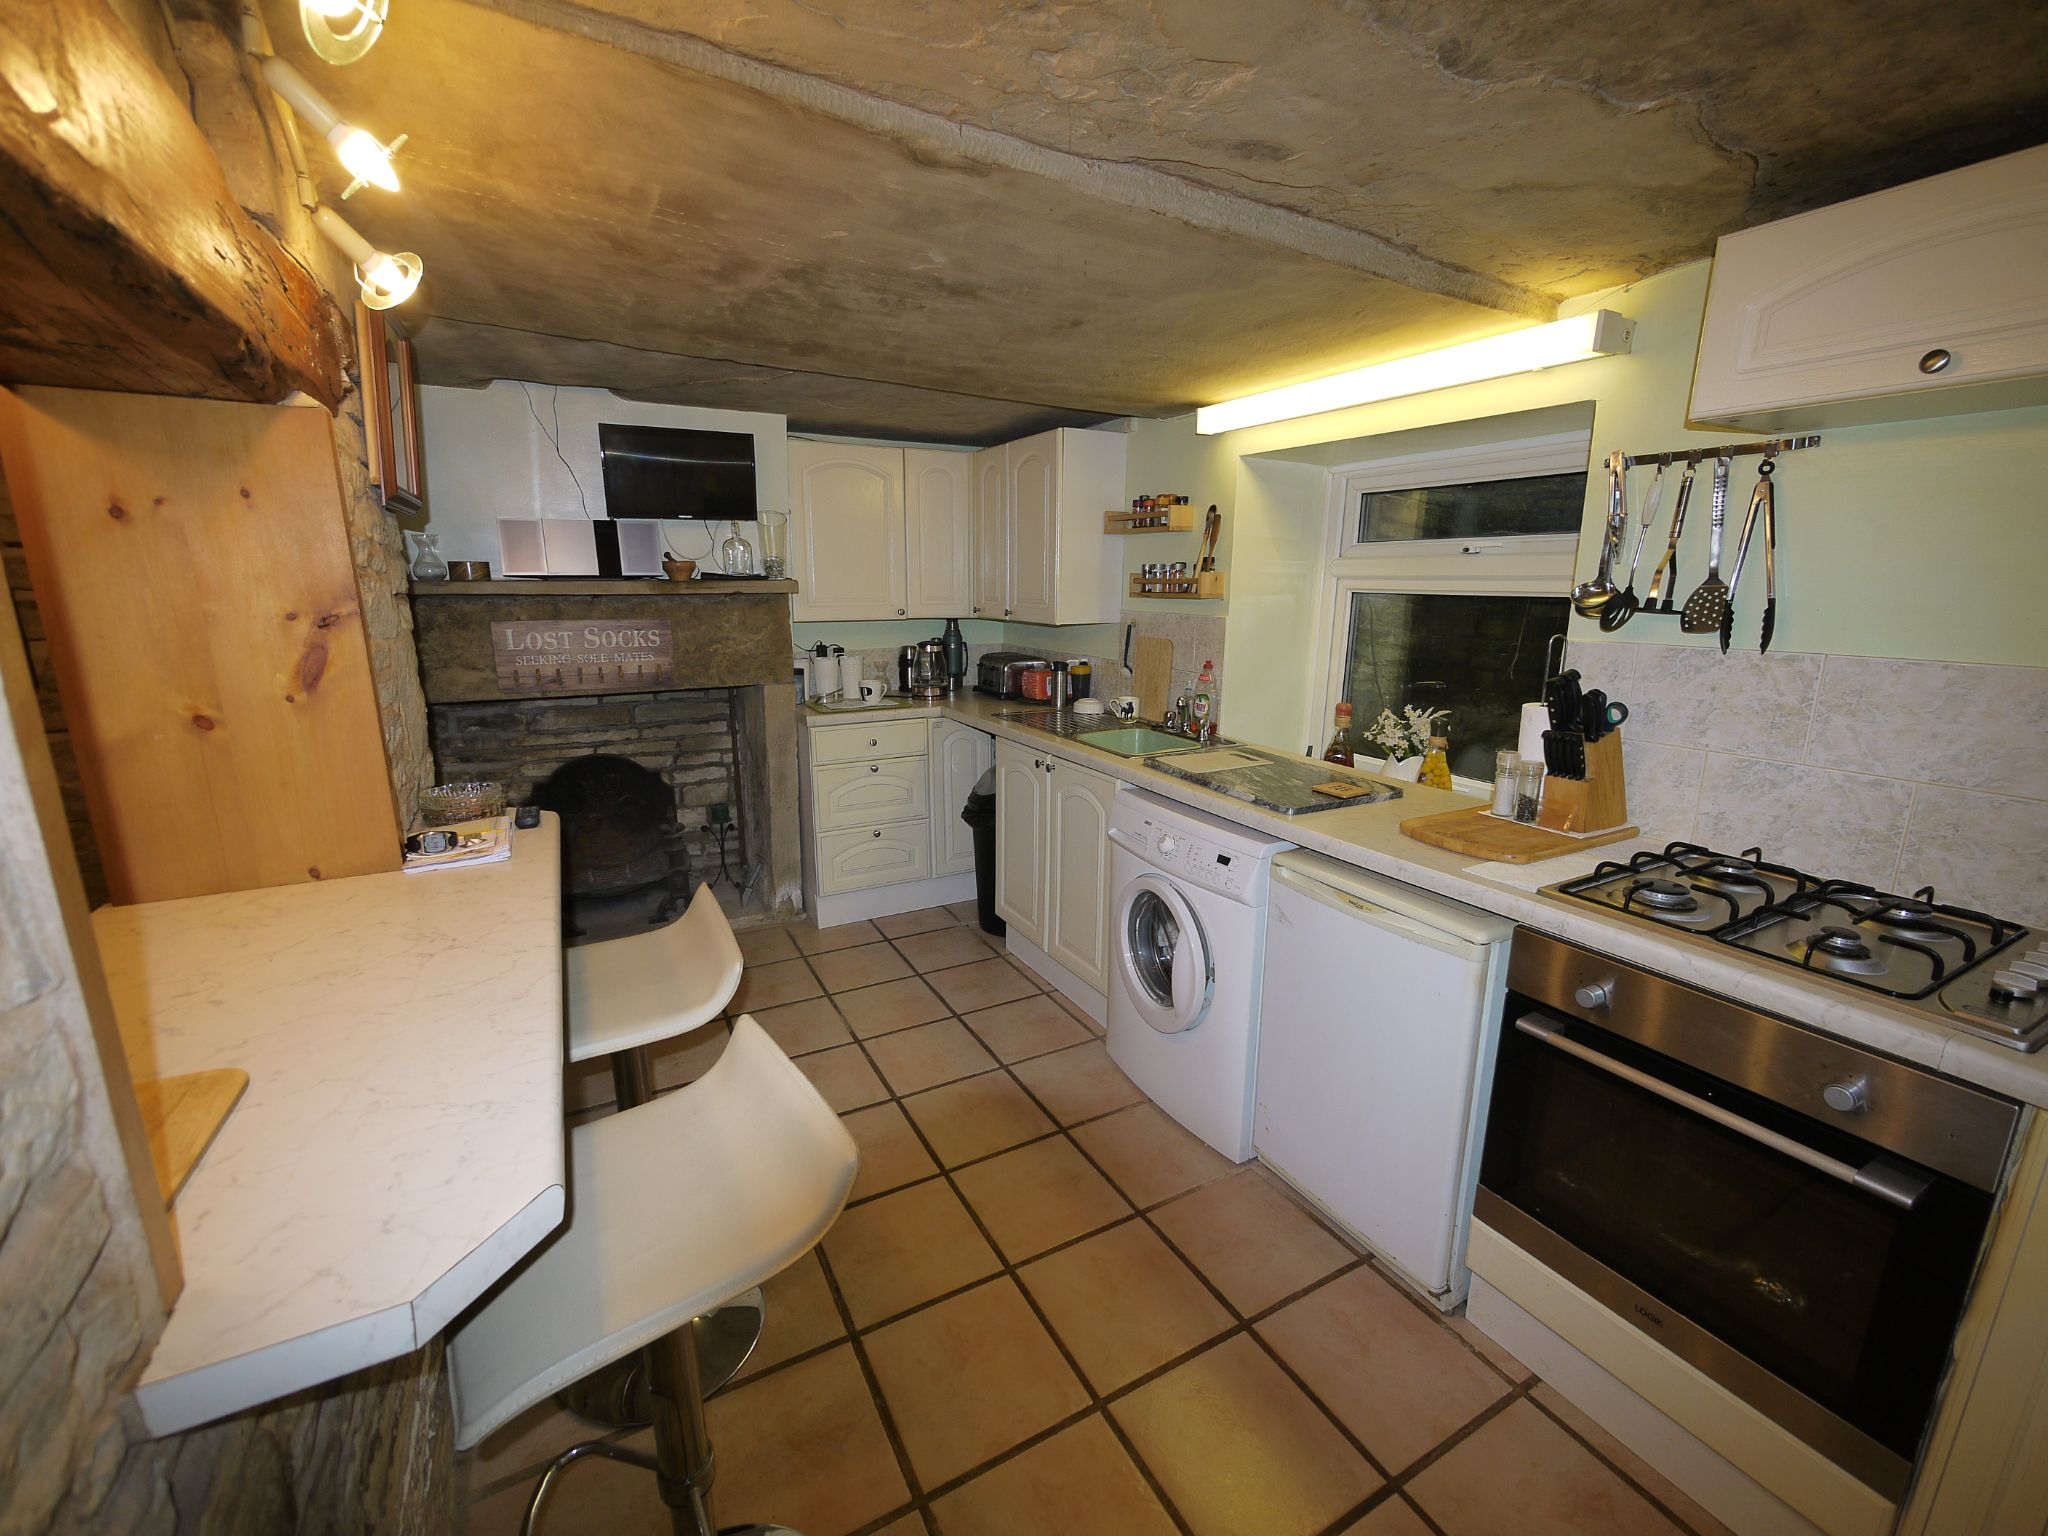 1 bedroom mid terraced house For Sale in Elland - Kitchen.